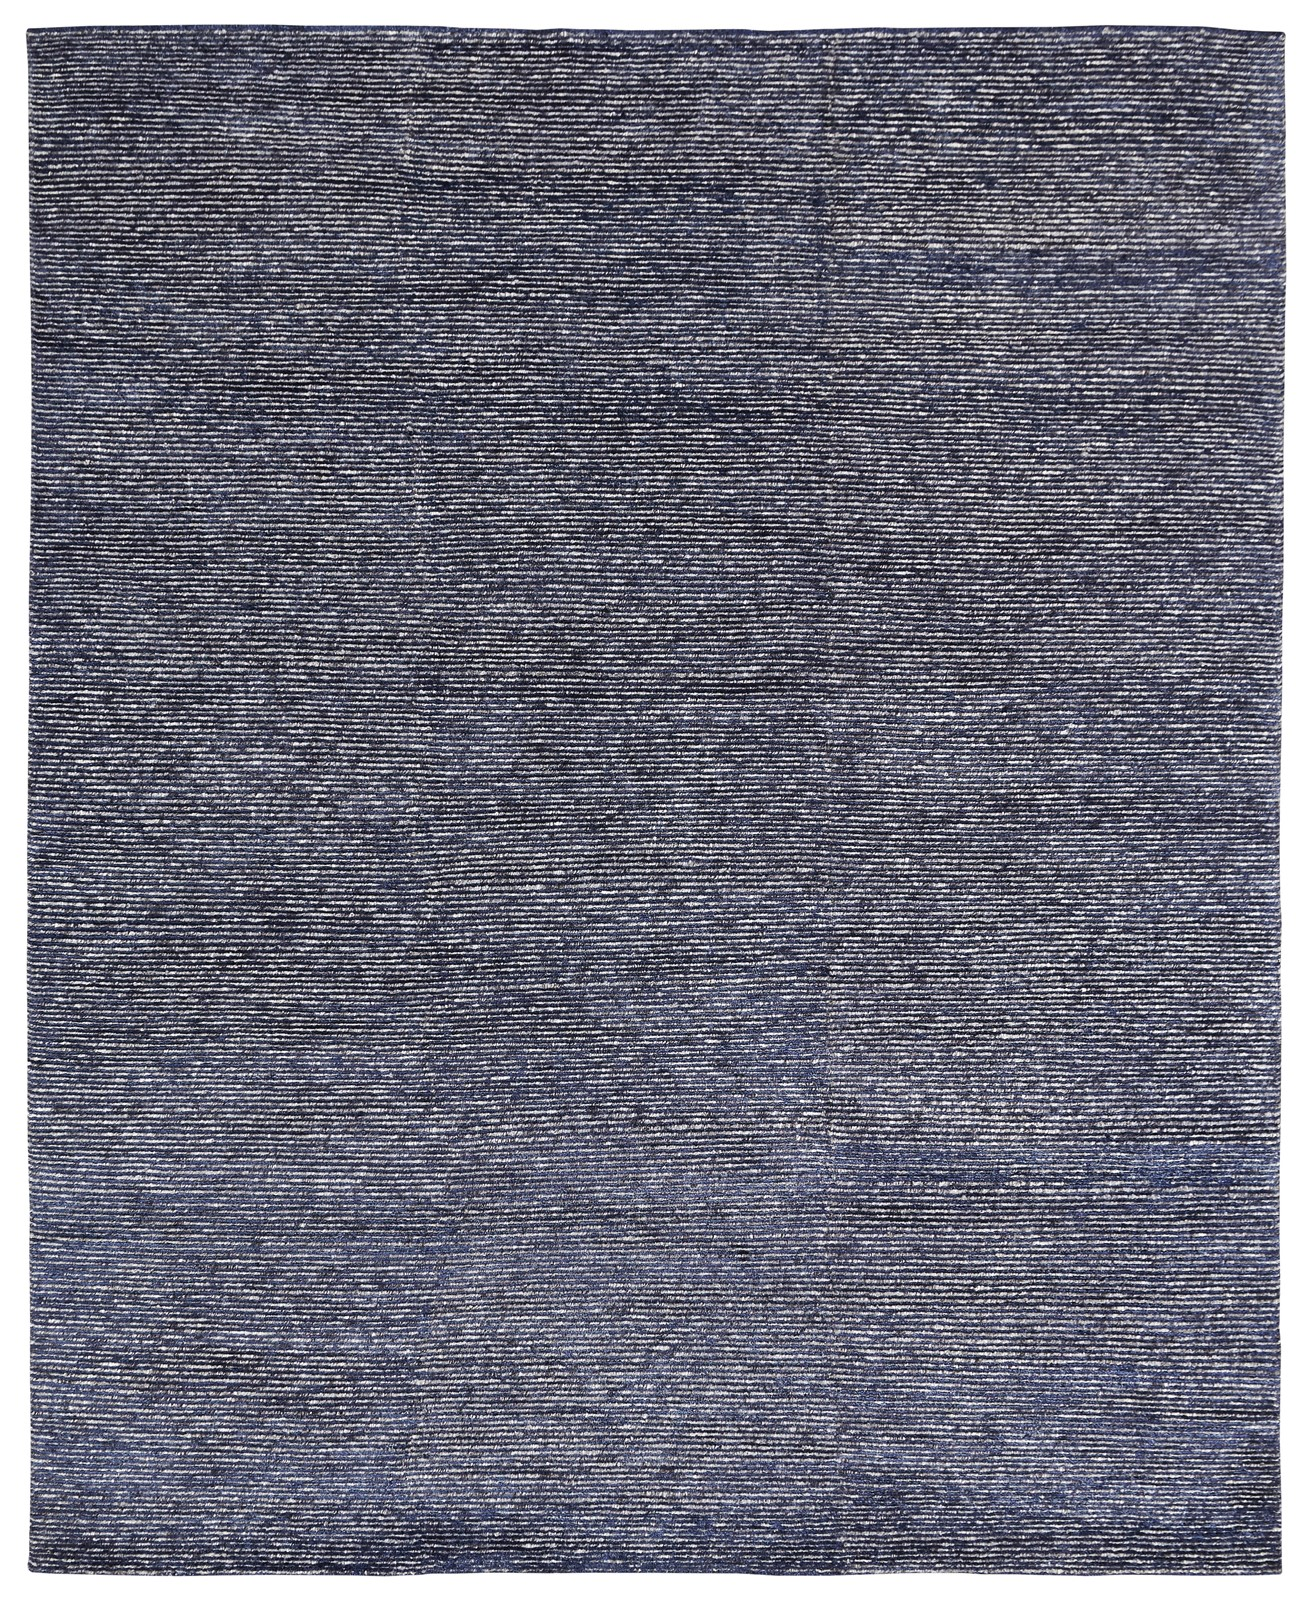 Visions Collection Indigo Tweed Kirishian Imported Rug Co